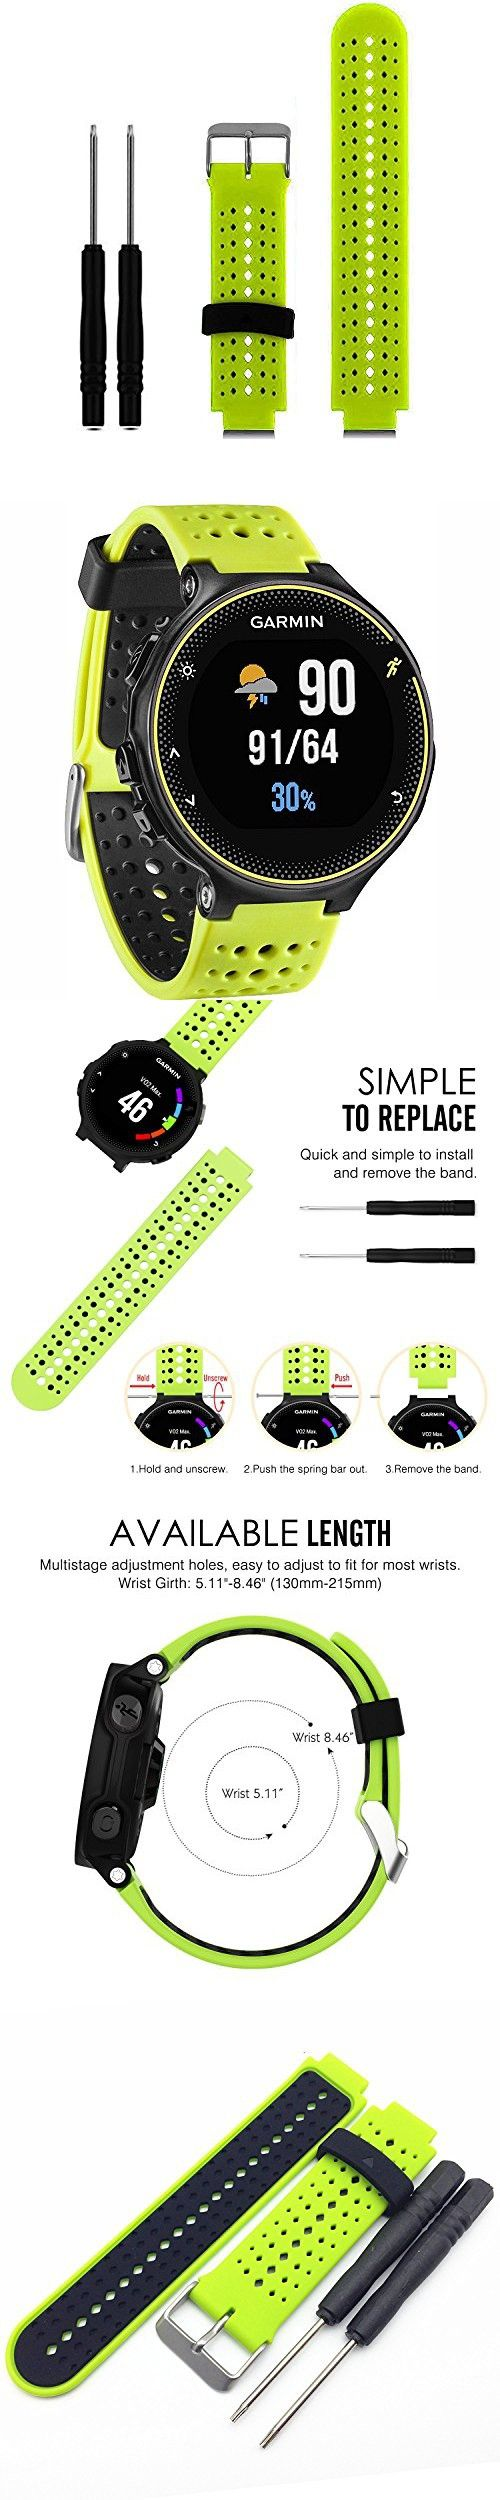 HWHMH 1PC Replacement Silicone Bands With 2PCS Pin Removal Tools For Garmin Forerunner 220/230/235/620/630 (No Tracker, Replacement Bands Only) (02-Lime/Black)